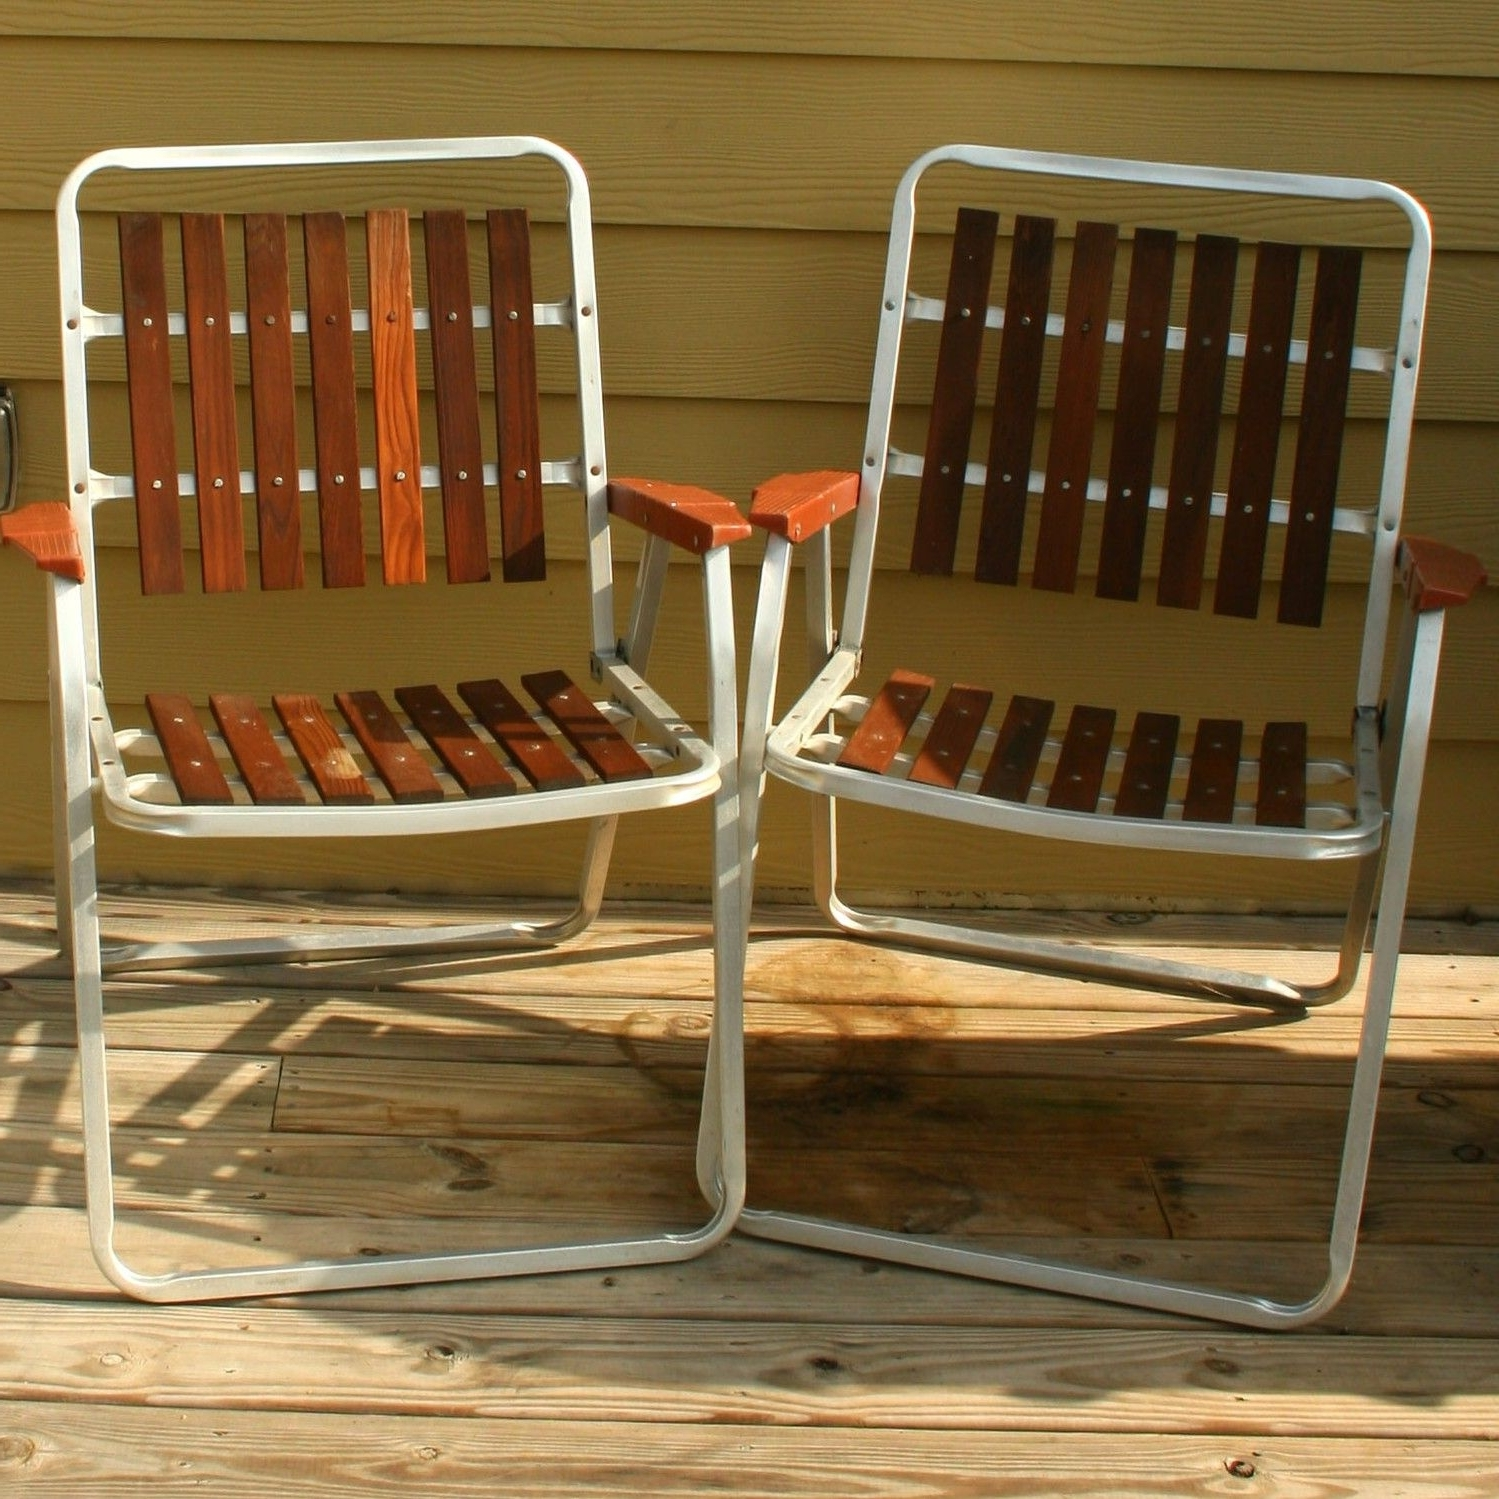 Retro Outdoor Rocking Chairs For Well Known Vintage Folding Lawn Chairs. Mid Century Modern (View 12 of 20)